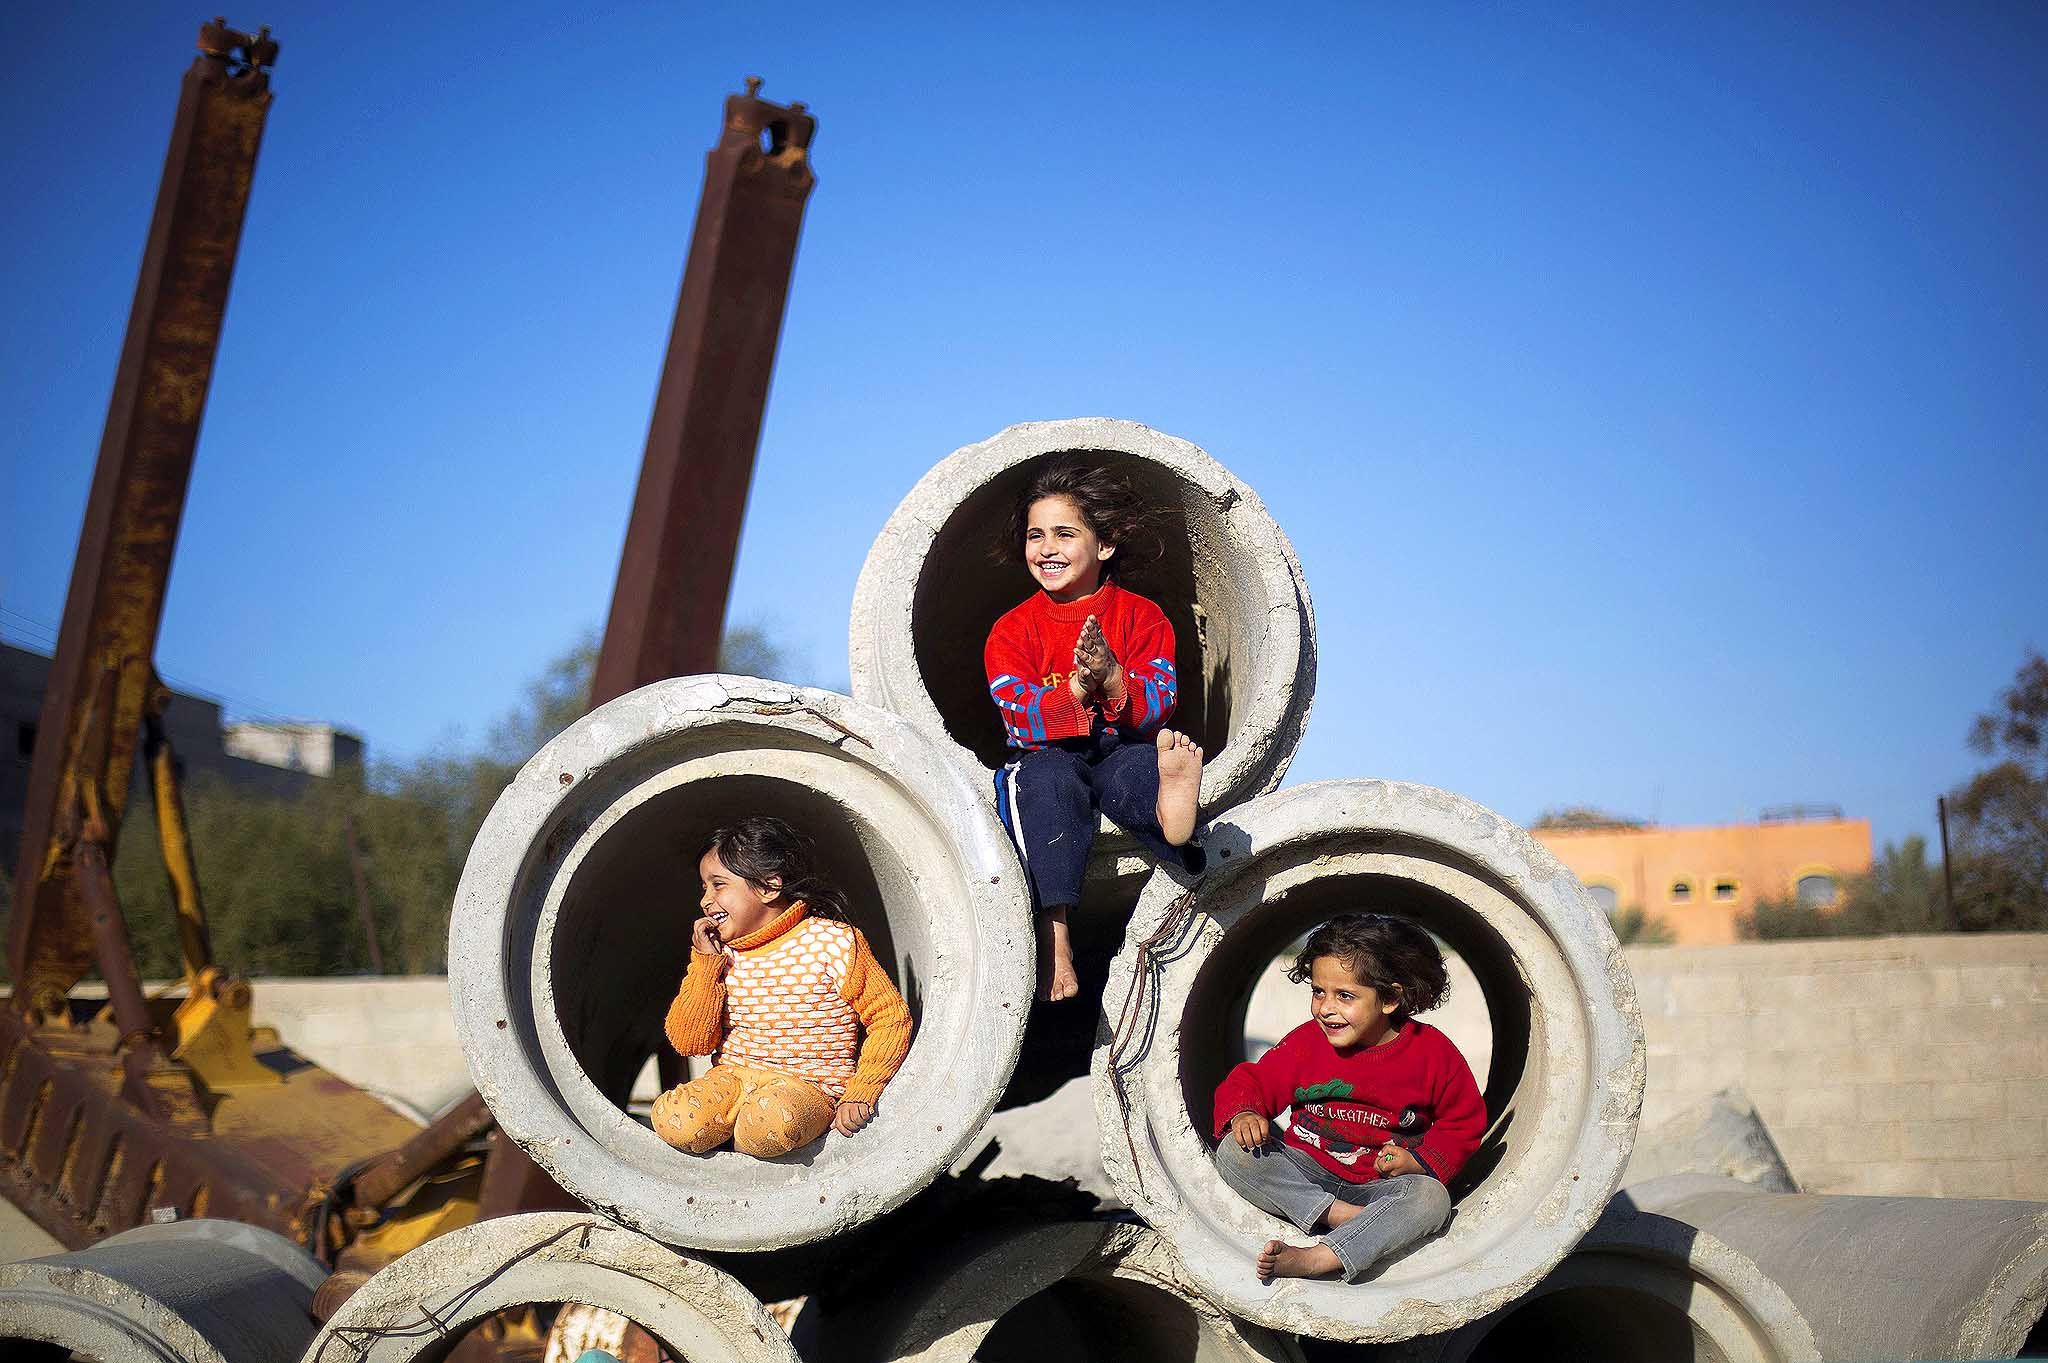 Palestinian children play with concrete pipes in Gaza City, on January 28, 2014.